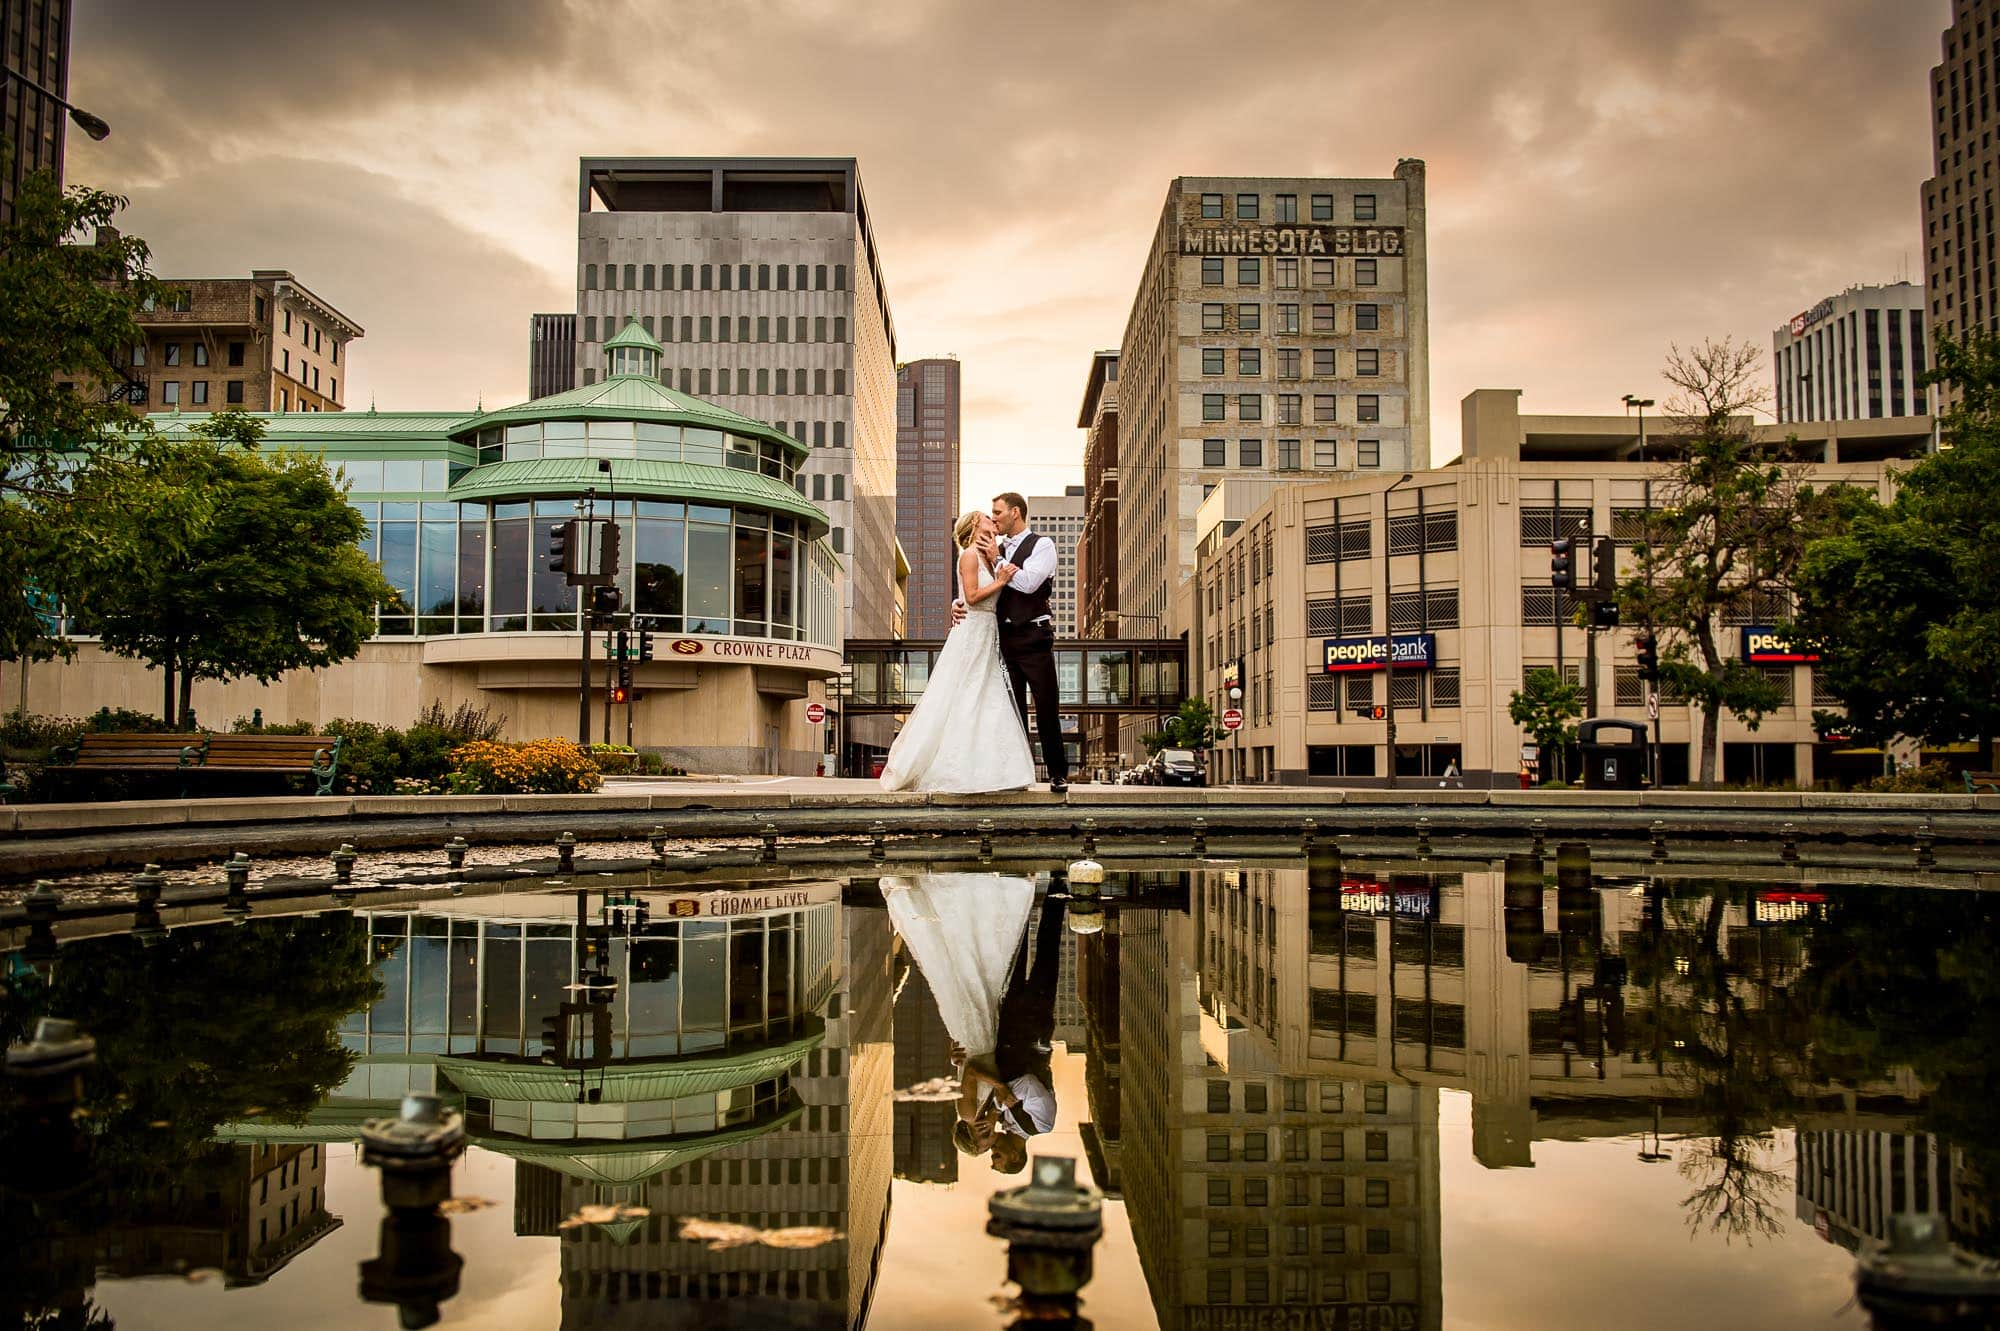 Wedding photo of bride and groom kissing with downtown Saint Paul, MN in the background